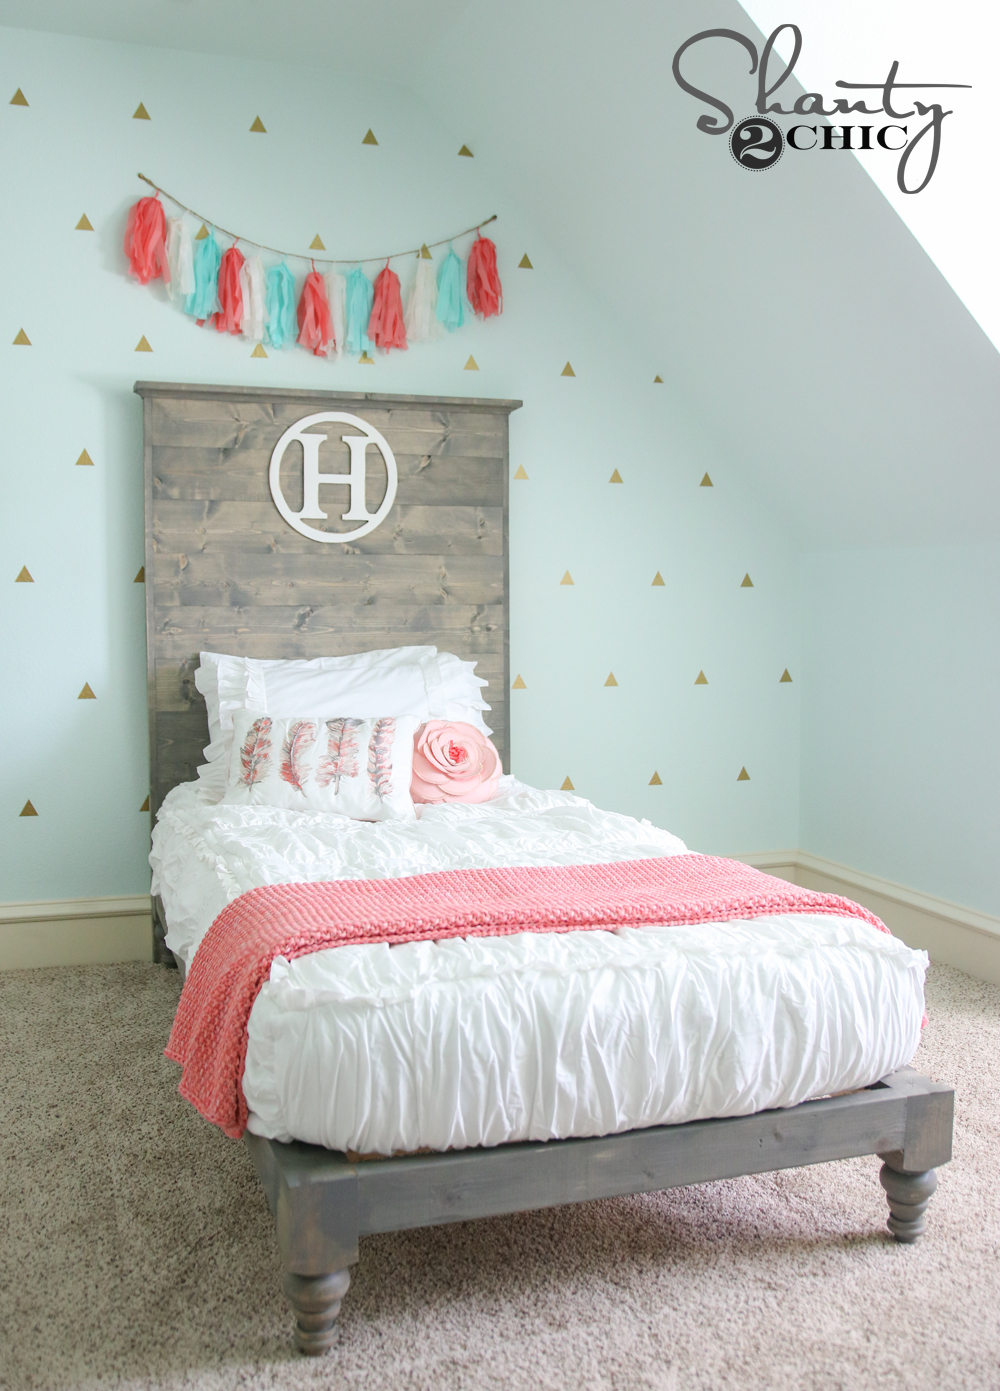 Diy Twin Bed Frame Easy Html Amazing Home Design 2019